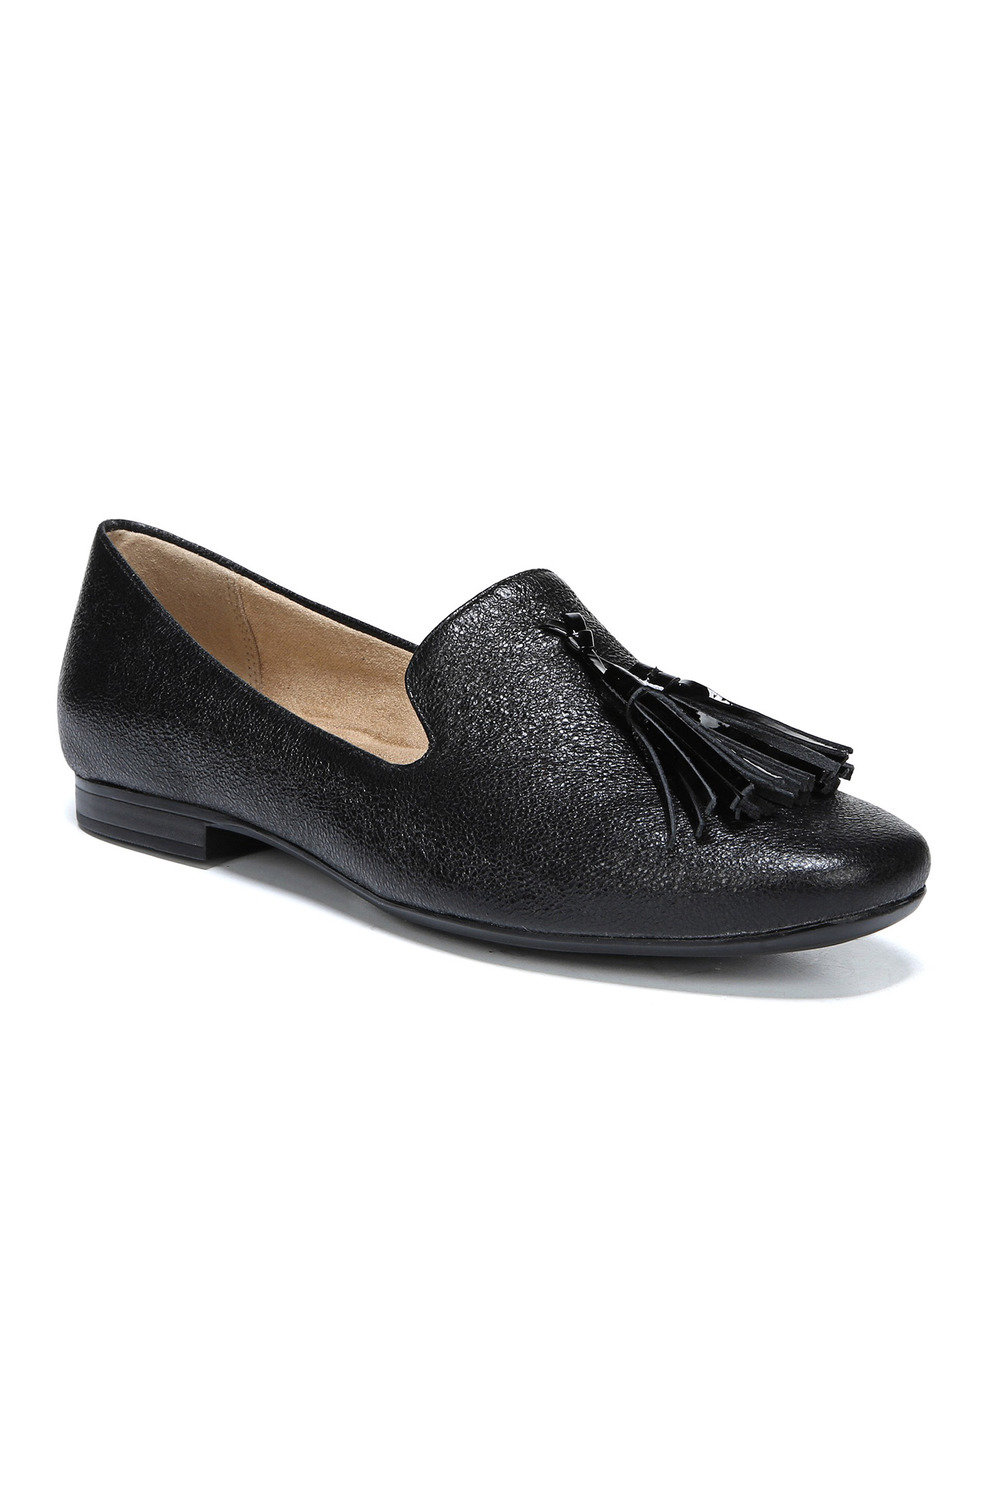 39c249314aa Naturalizer Elly Court Flat Online